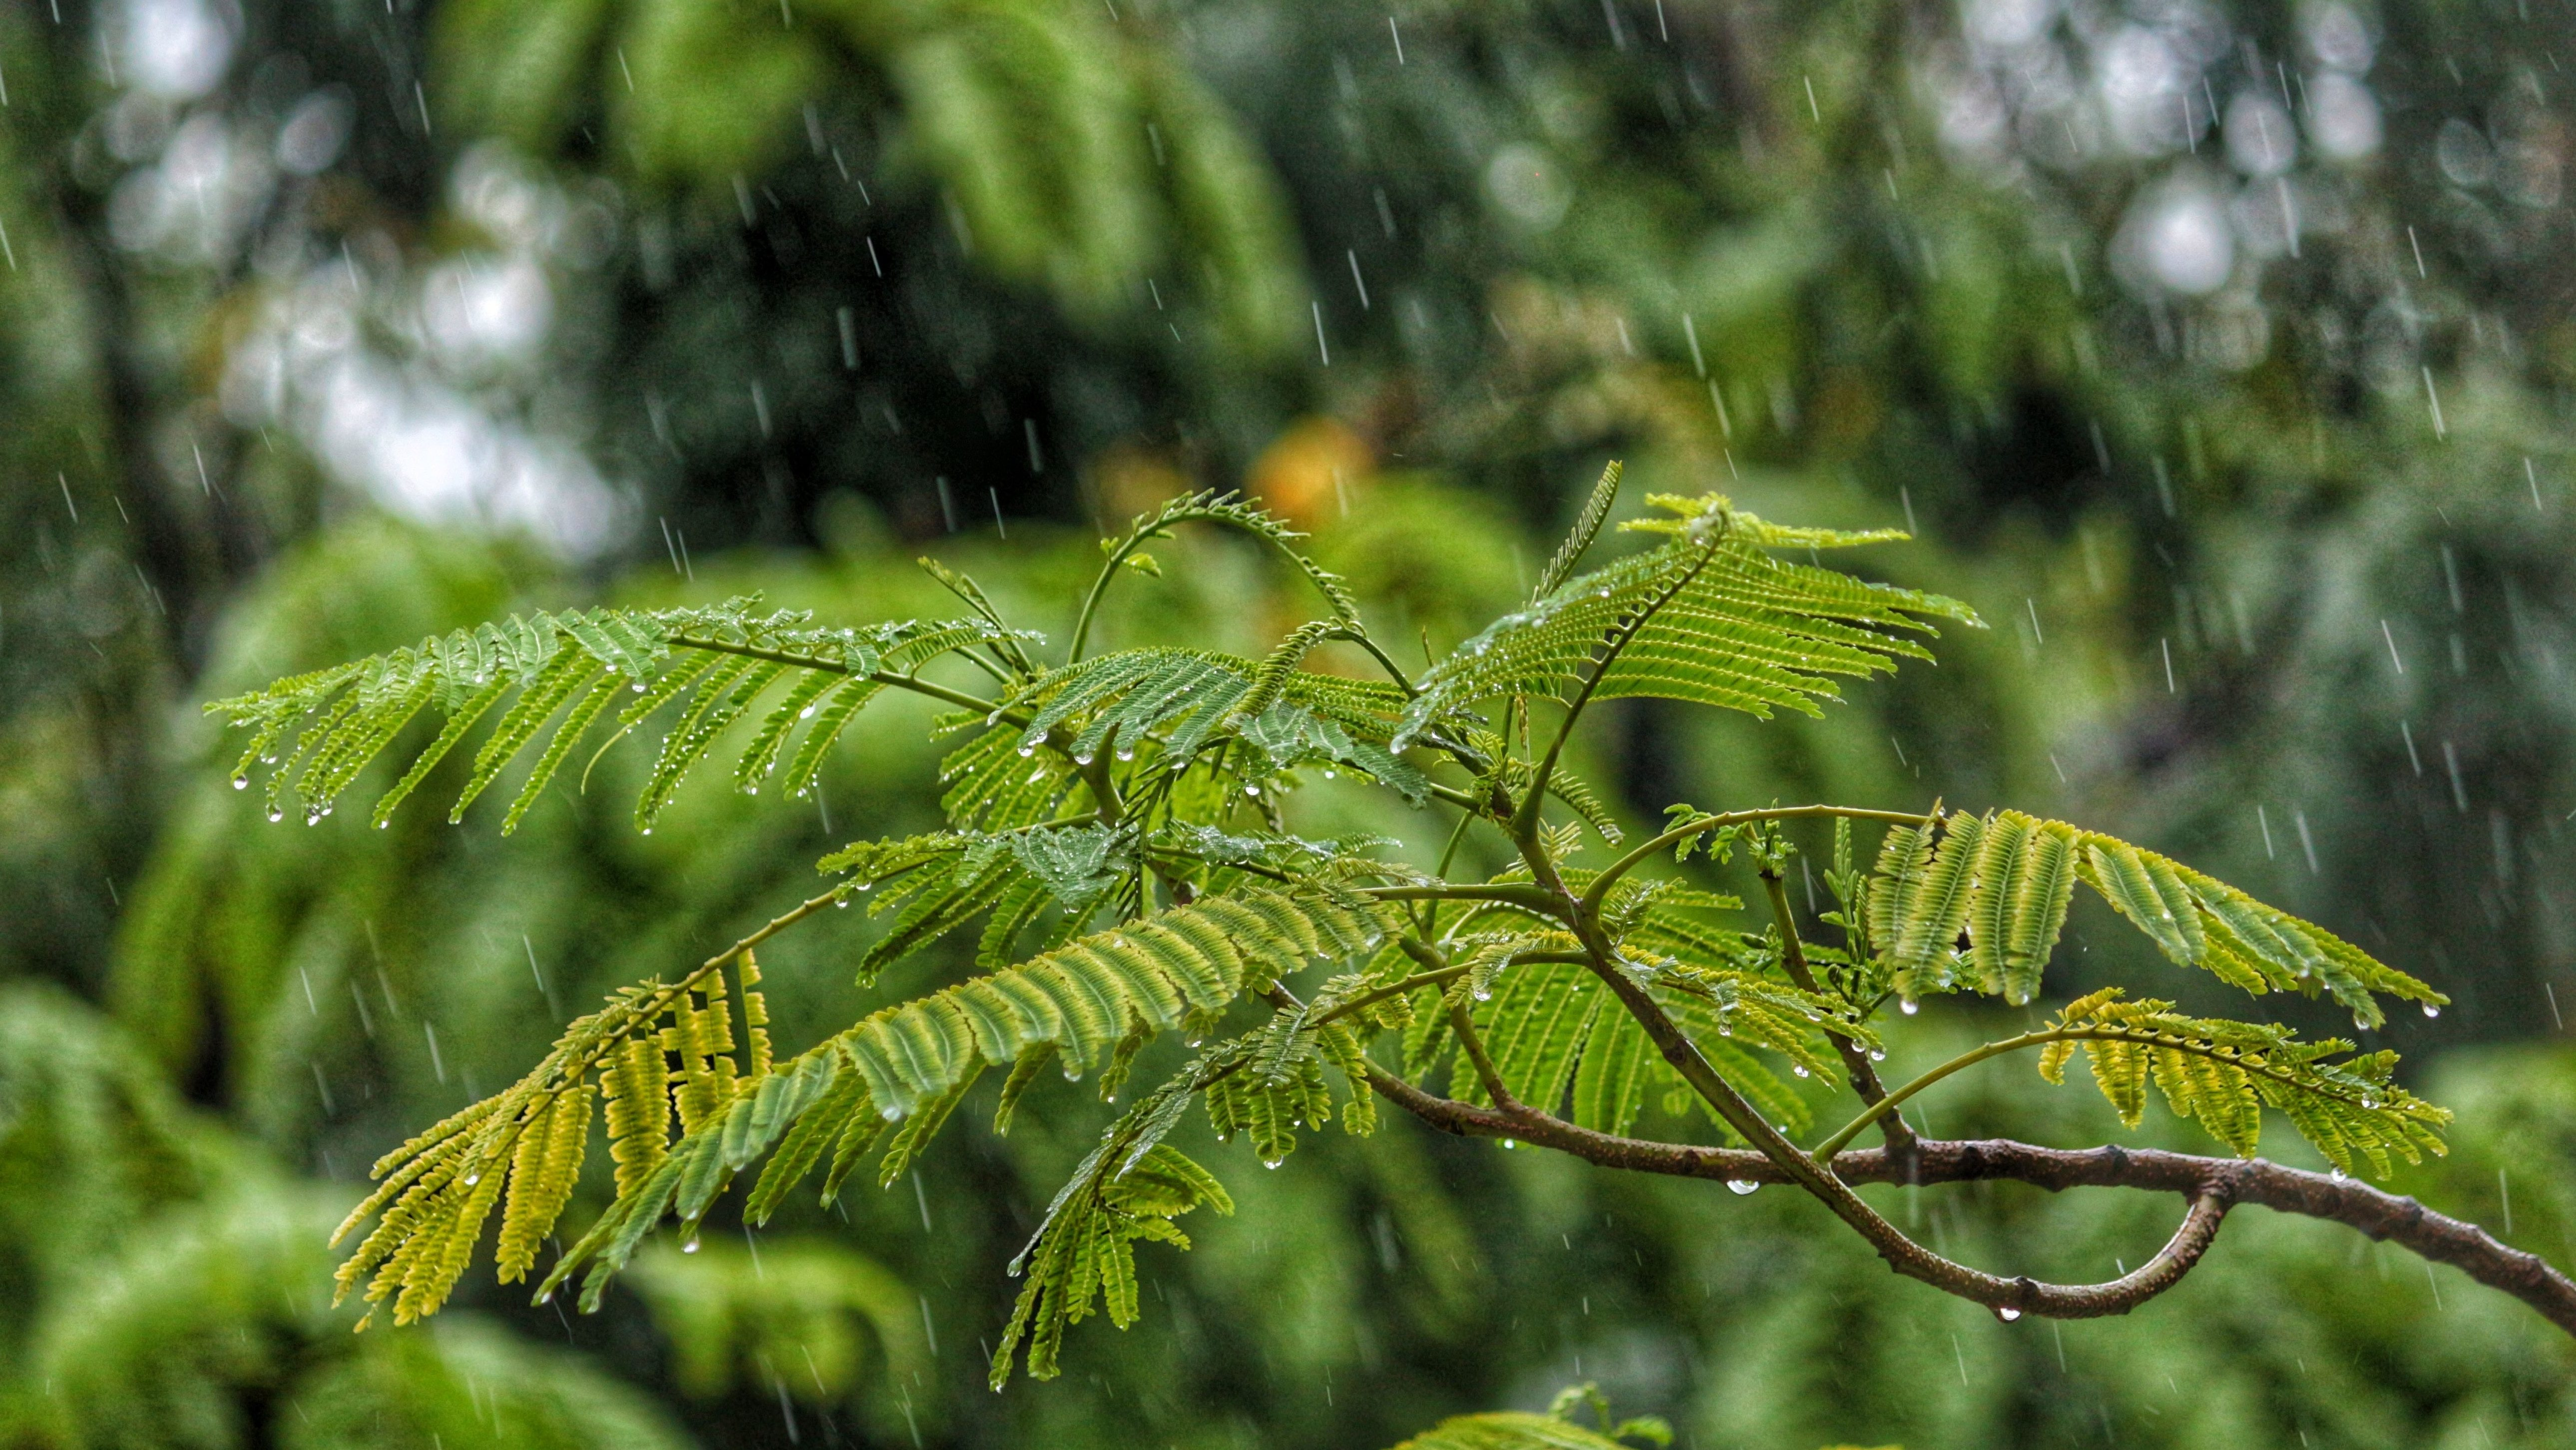 An image of rain falling on a fern-like green plant.